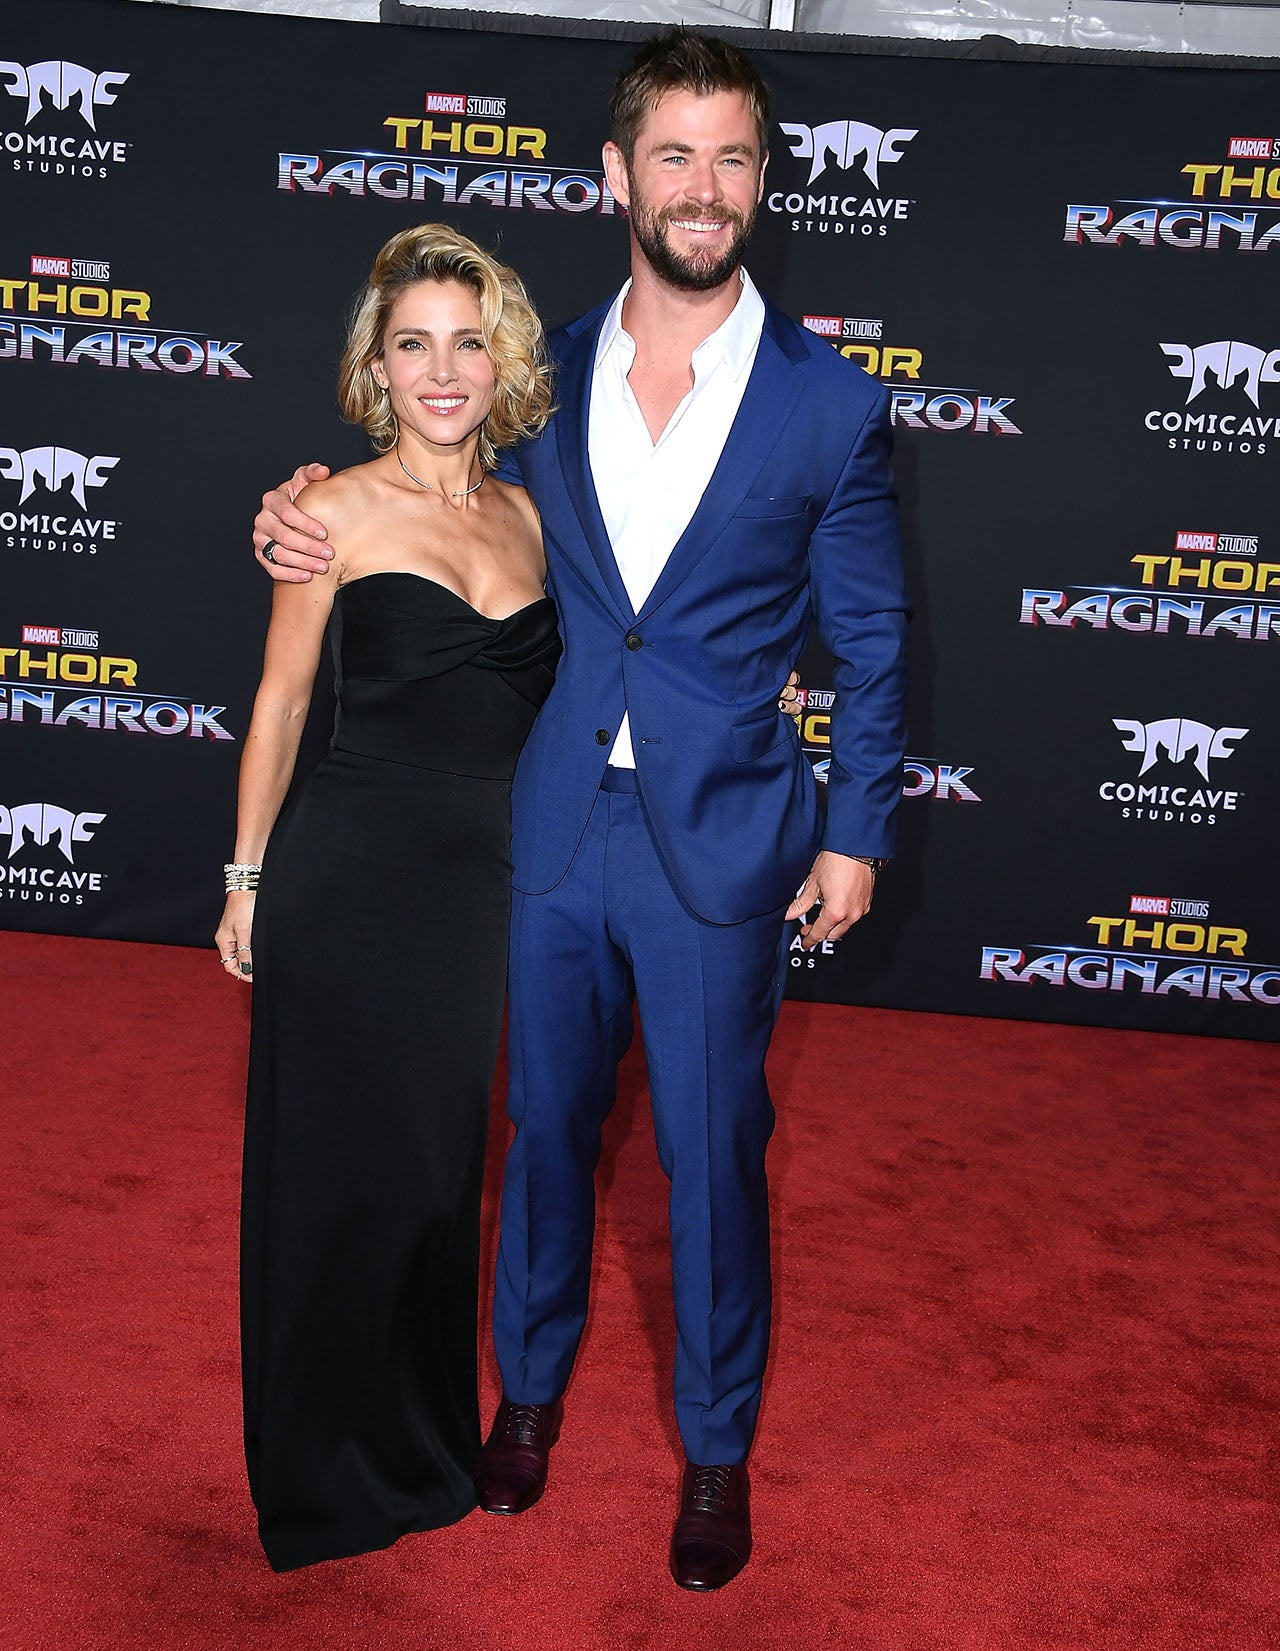 how did chris hemsworth and his wife meet